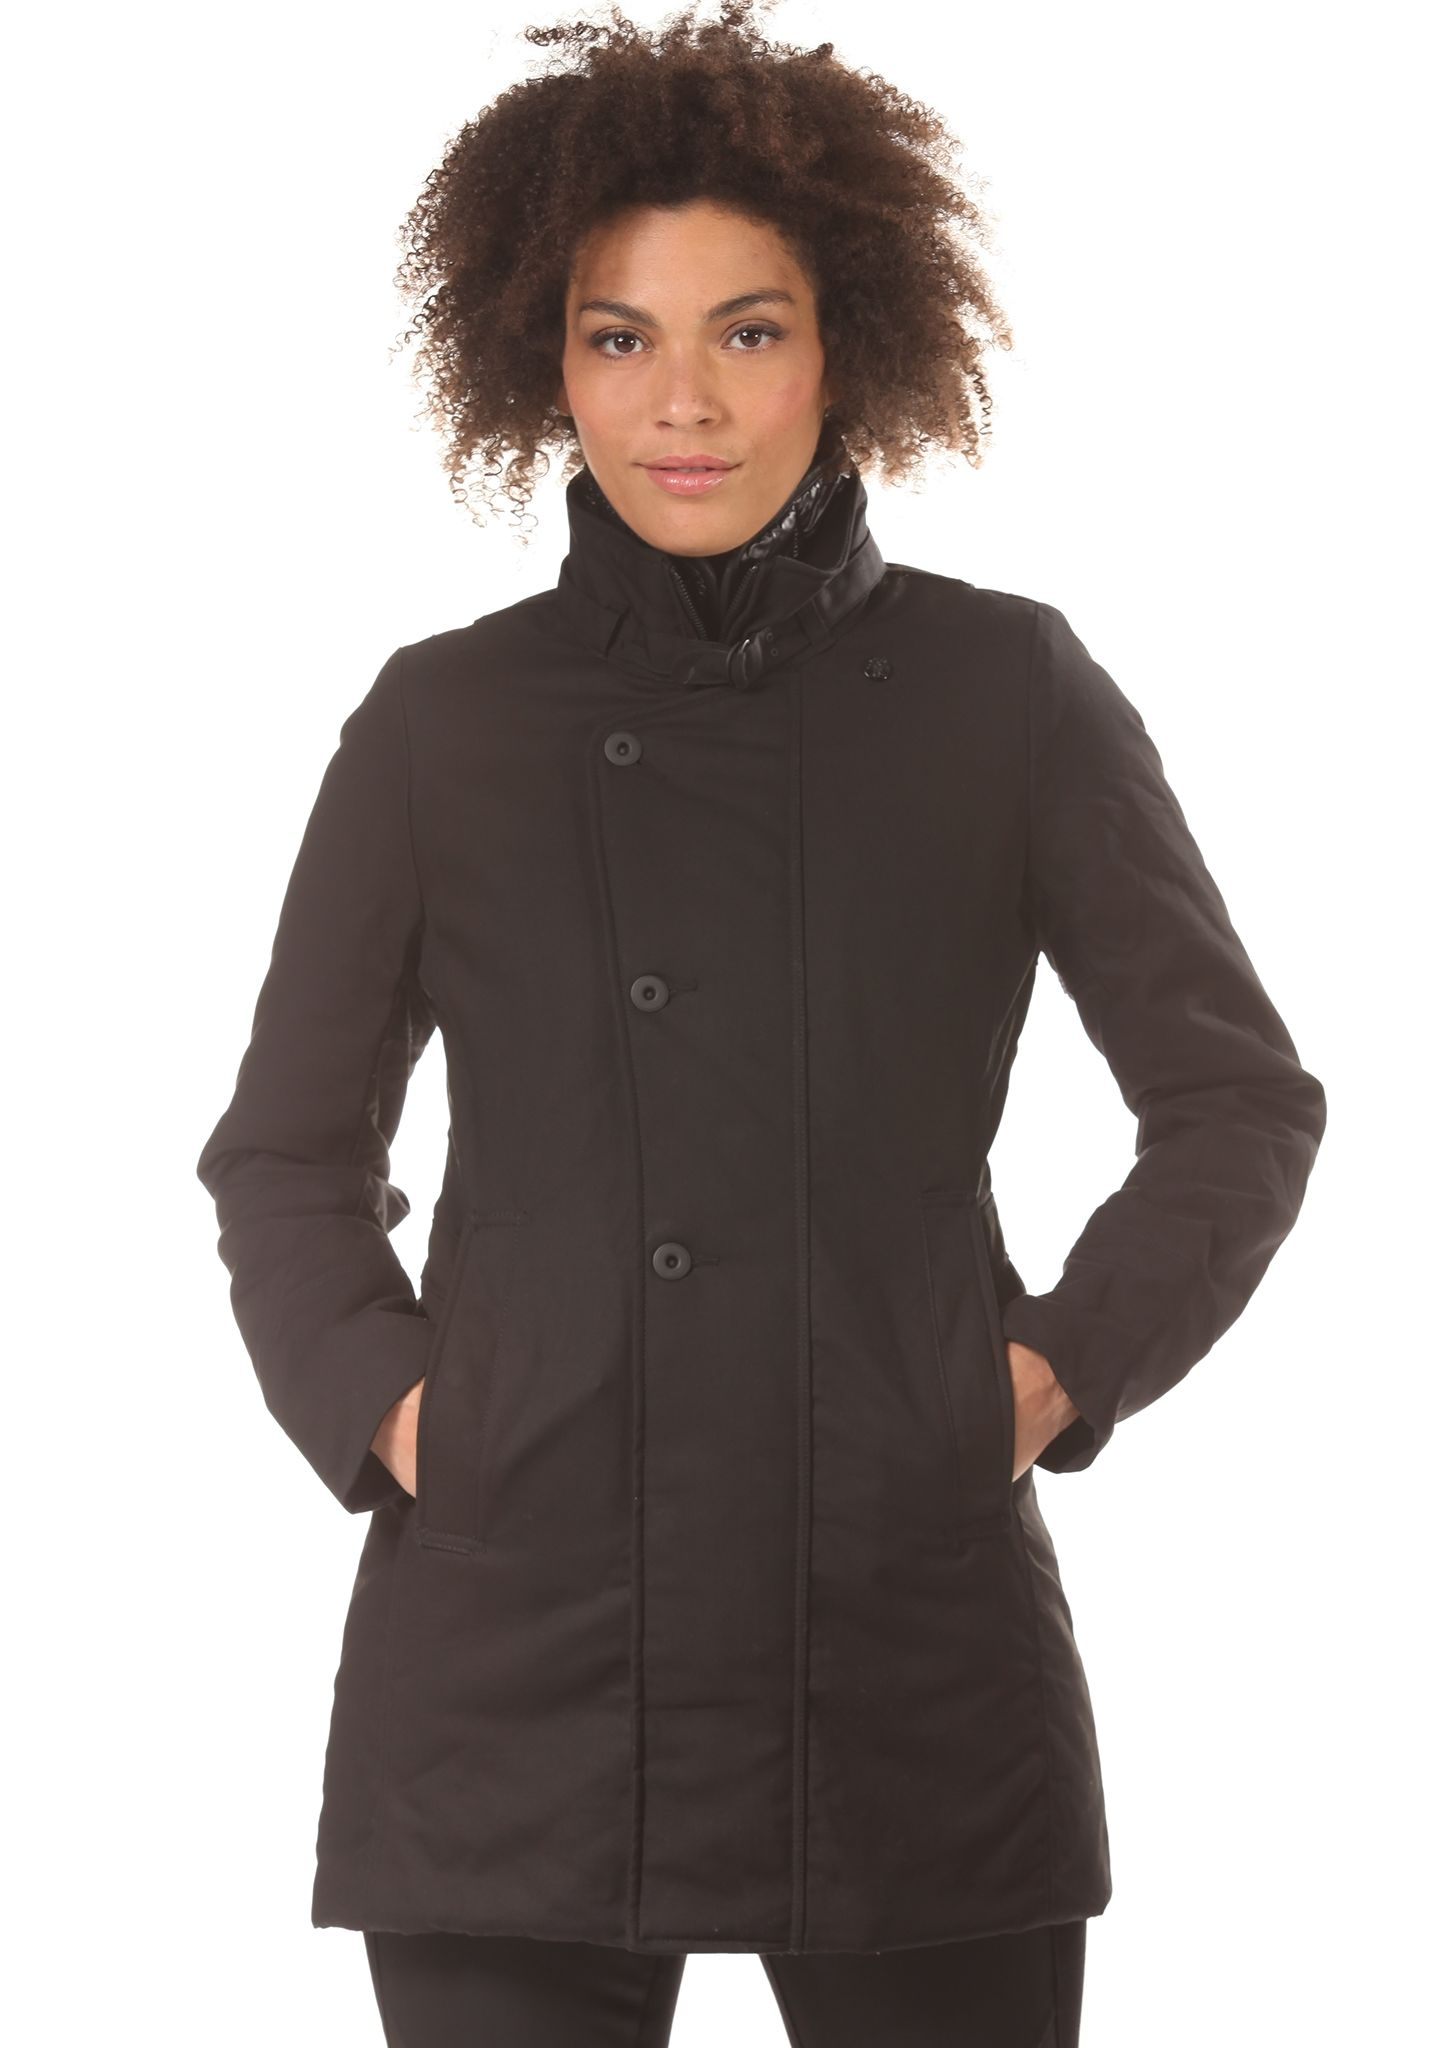 G-STAR Minor Relax Trench - Coat for Women - Black - Planet Sports d97146e52626